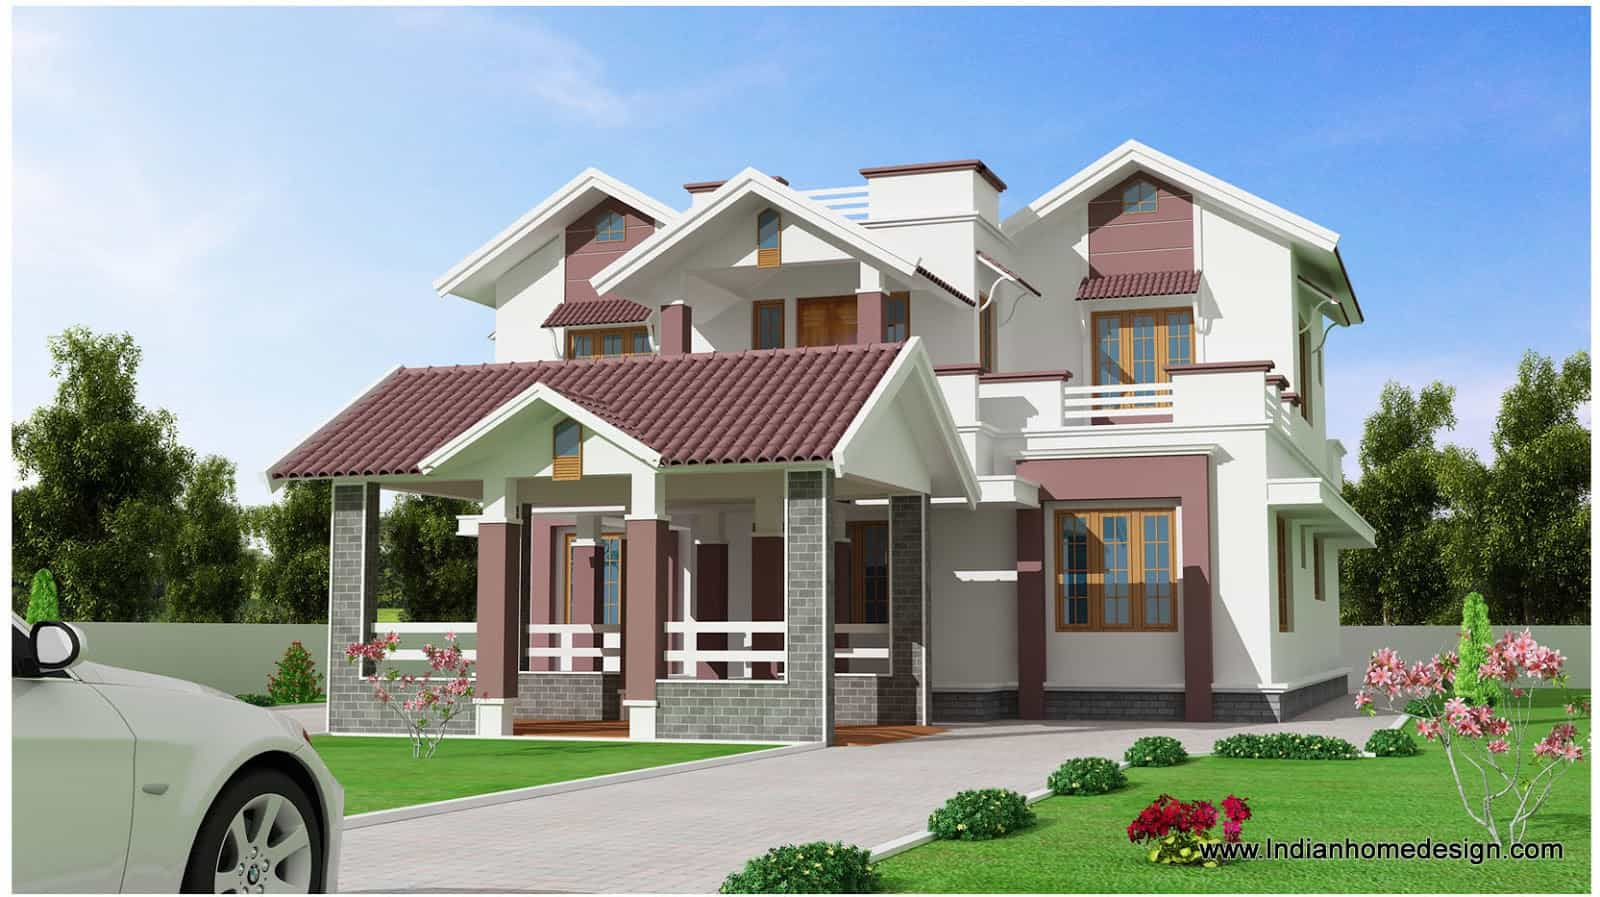 Fabulous Villas Kerala Home Designs 1600 x 897 · 329 kB · jpeg